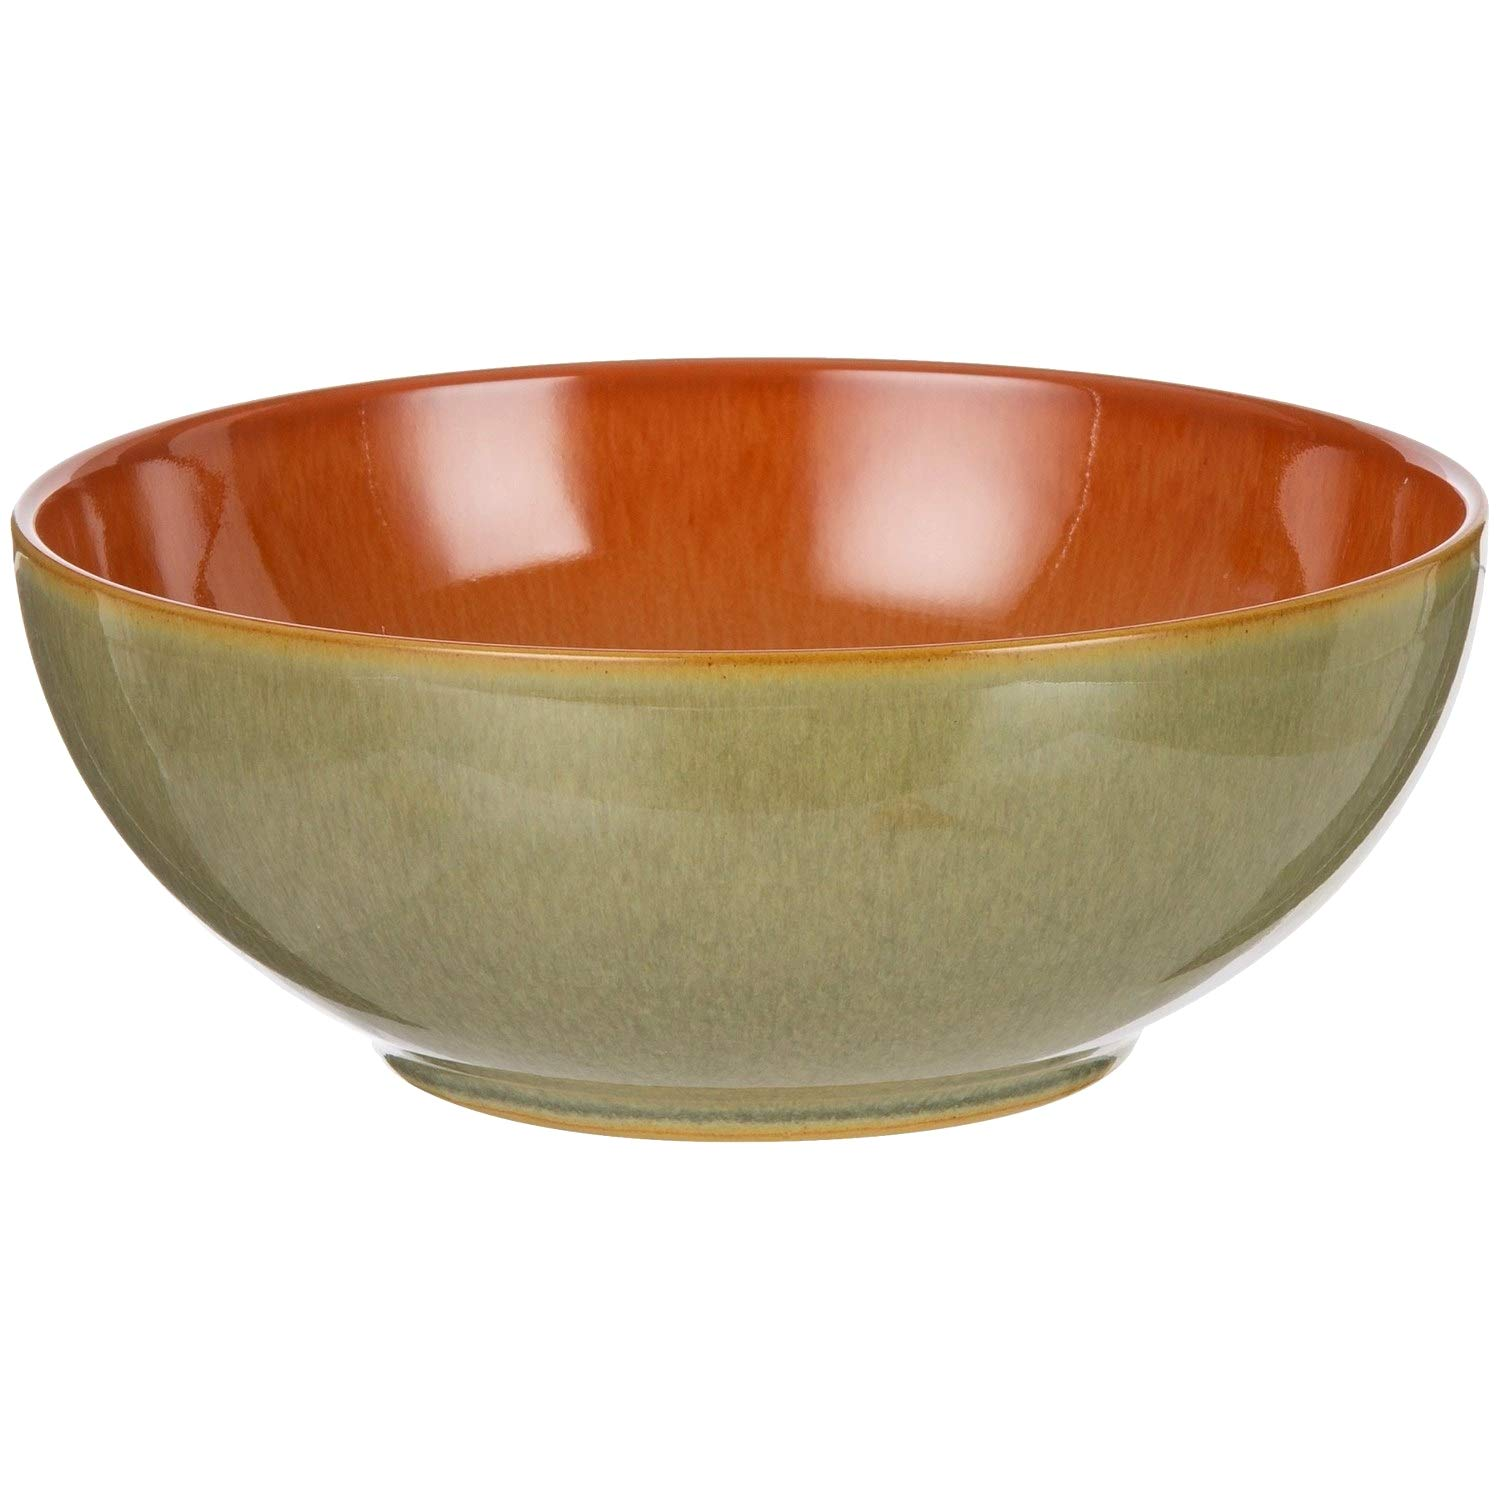 Denby Duets Stoneware Soup and Cereal Bowl - 6-1/2 Inch - Set of 2 - Paprika